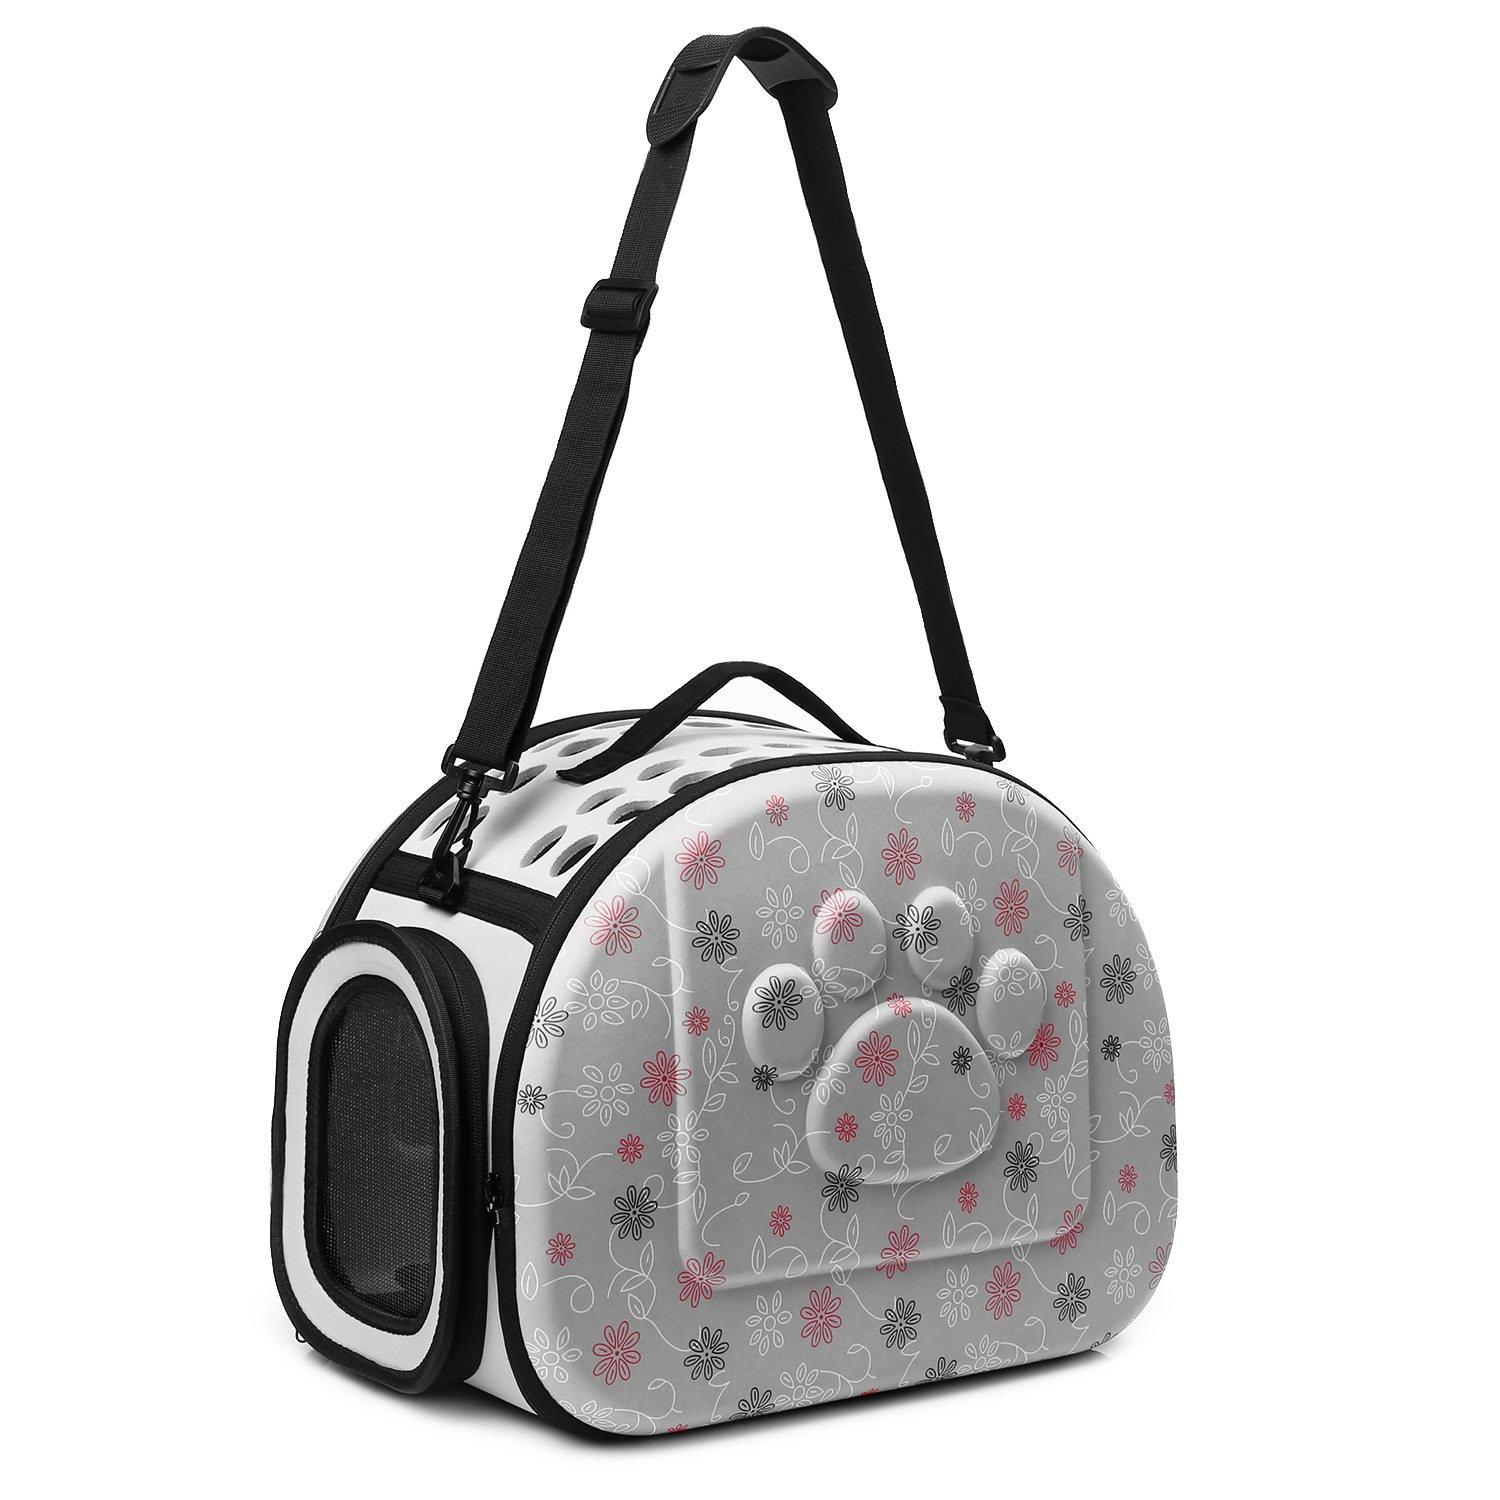 CORALTEA EVA Cute Portable Collapsible for Pets of Medium Size Cats & Dogs Airline Approved Outdoor Under Seat Travel Pet Carrier Soft Sided Puppy Bag (gray) by Coraltea (Image #1)